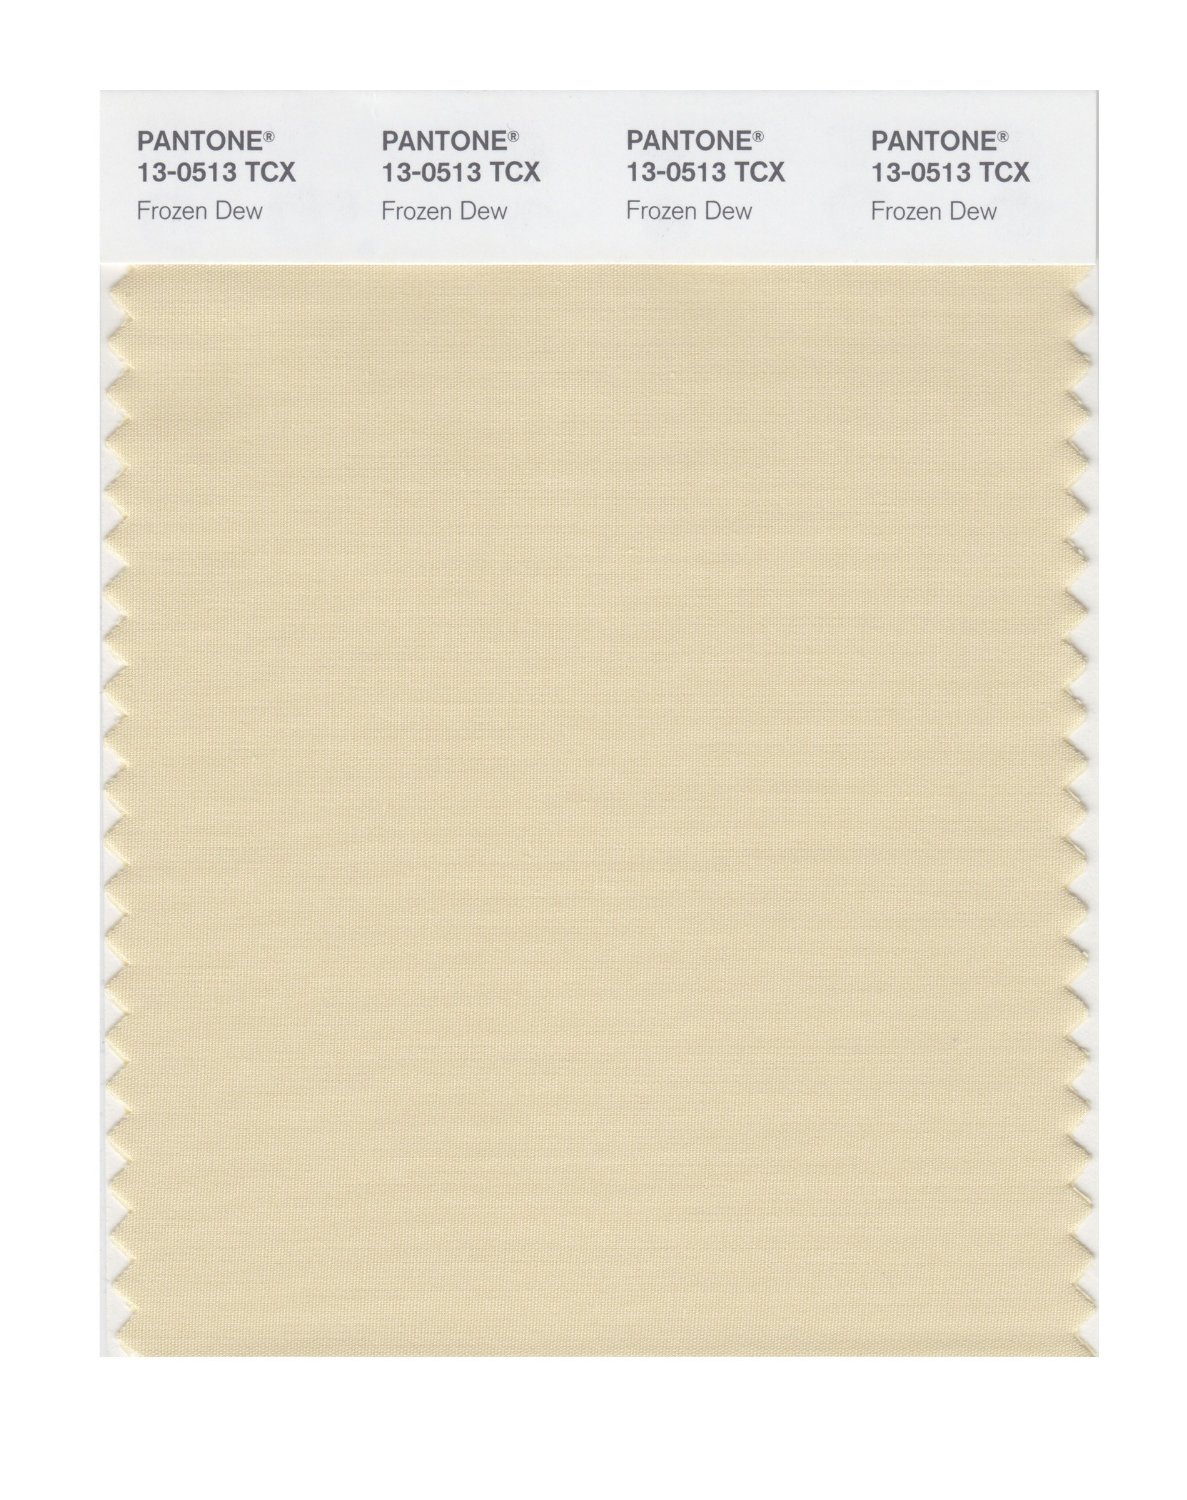 Pantone Smart Swatch 13-0513 Frozen Dew